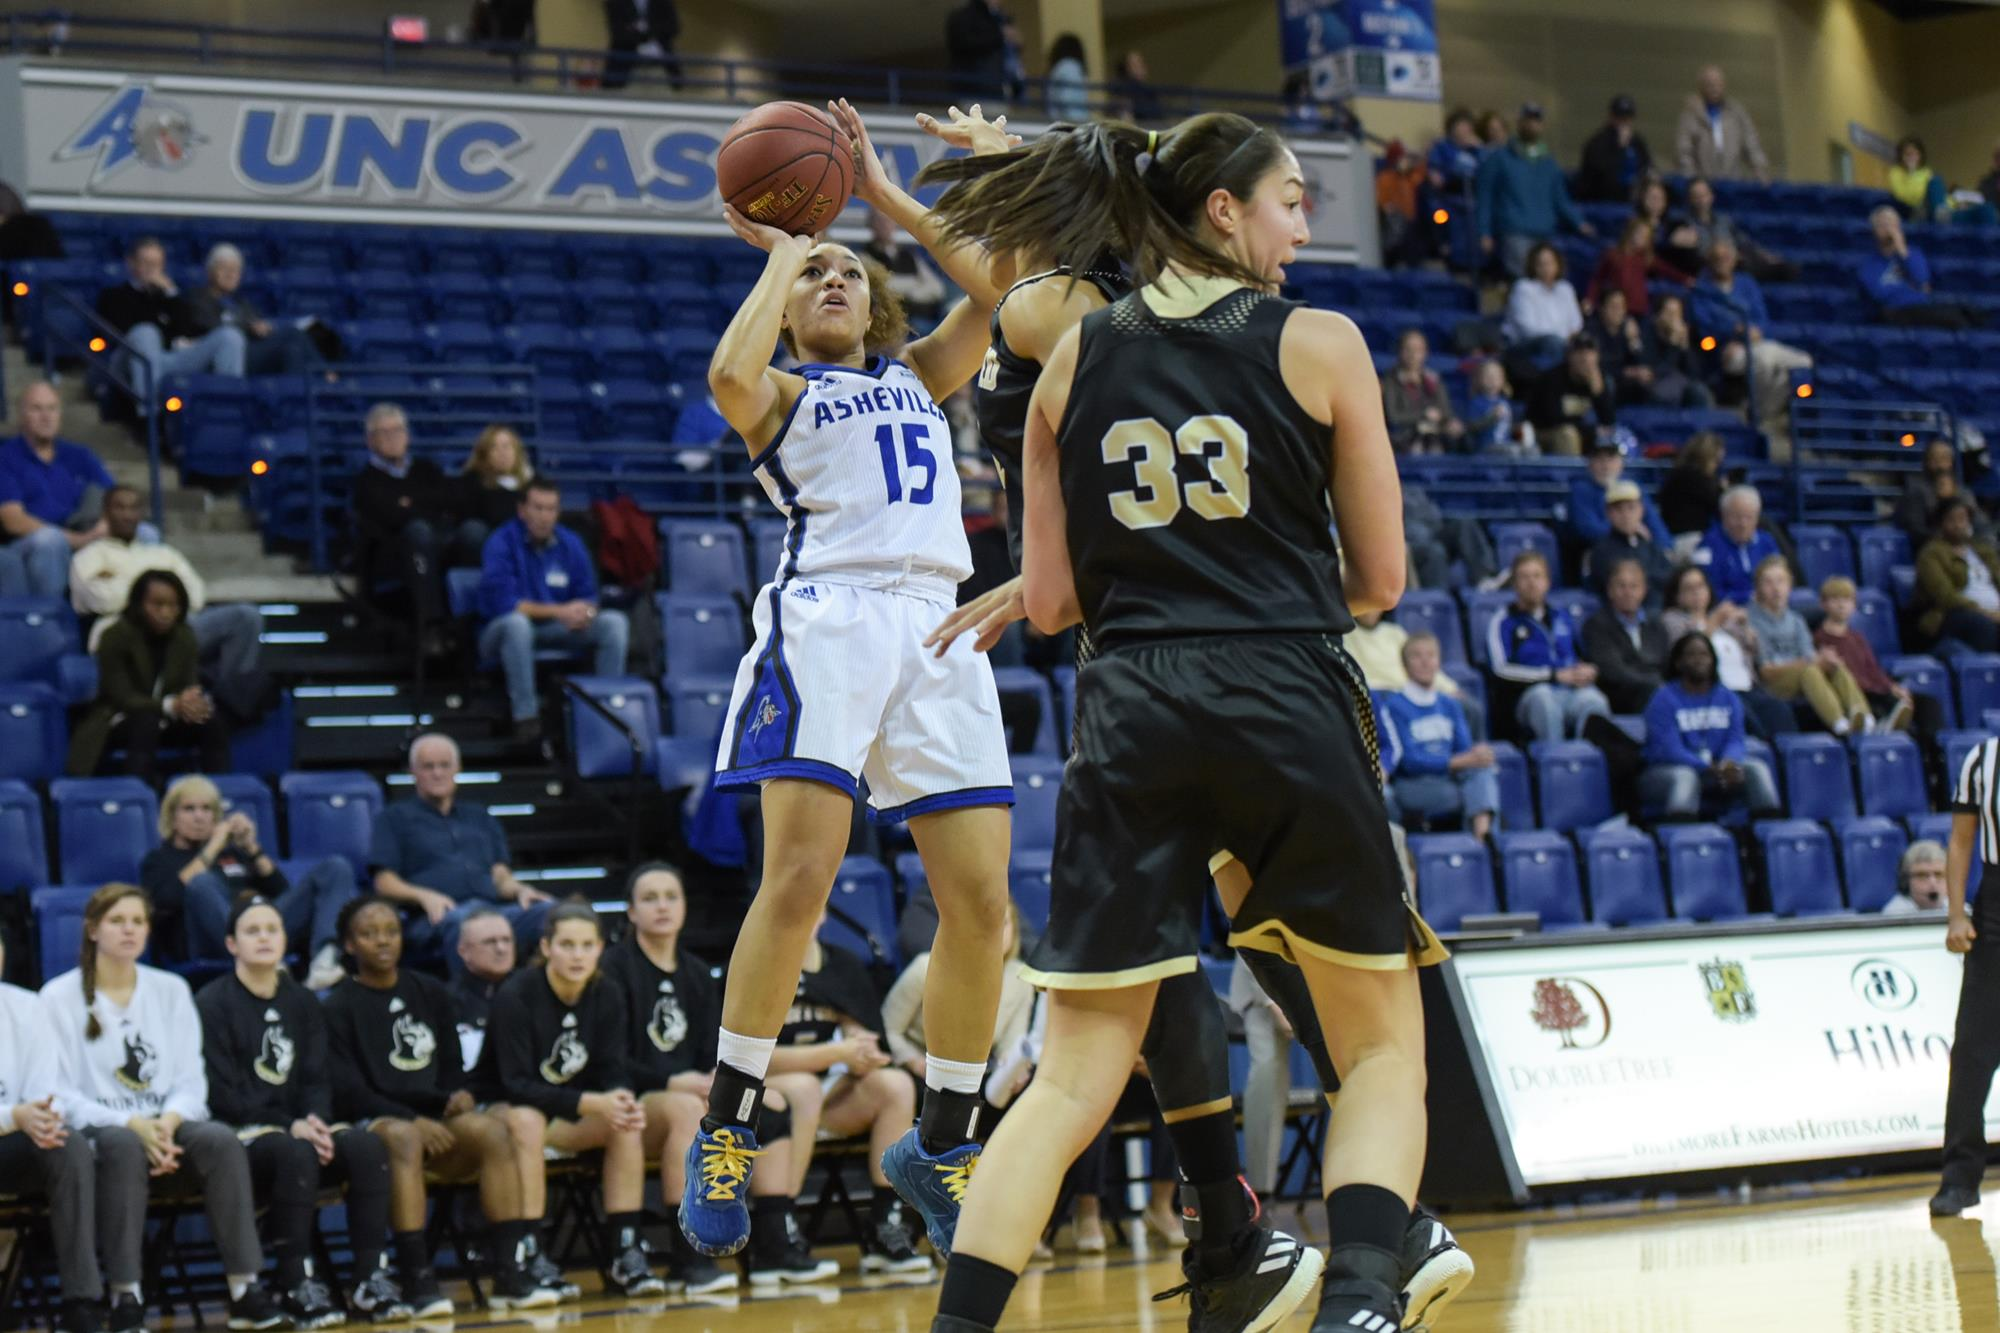 sonora dengokl - women's basketball - unc asheville athletics